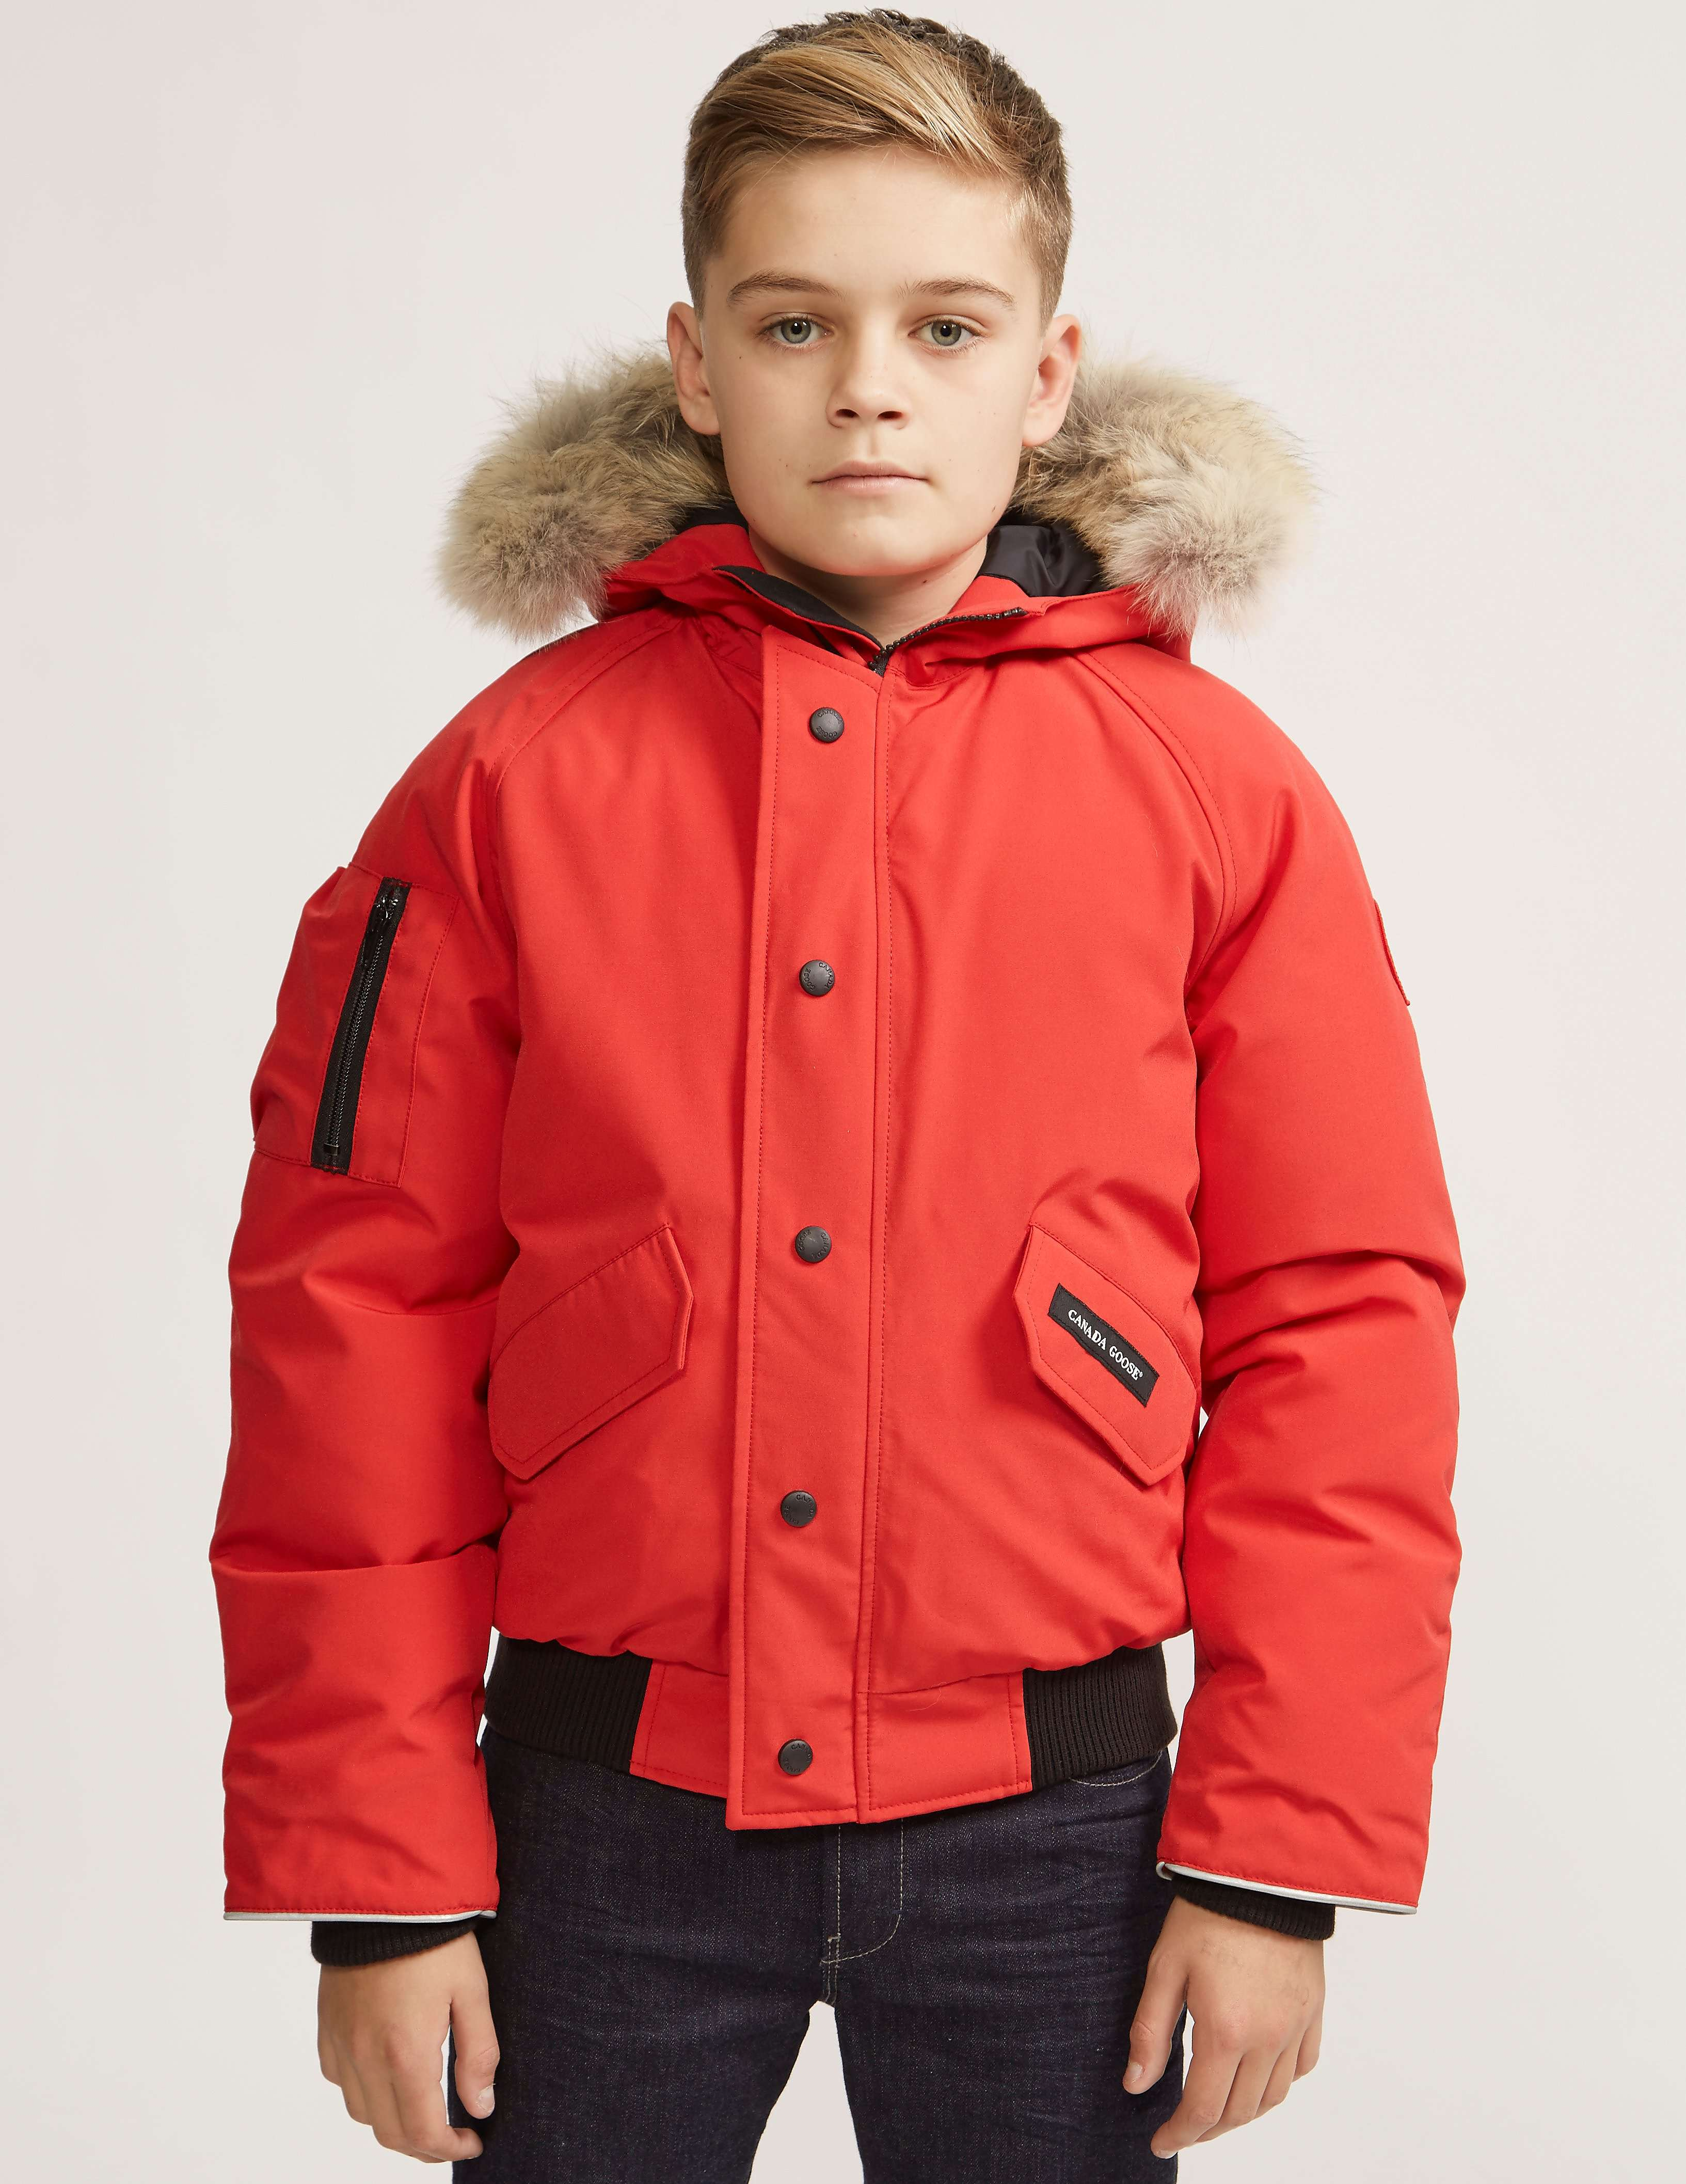 Canada Goose coats online authentic - Canada Goose - Jackets & More | Kids | Tessuti